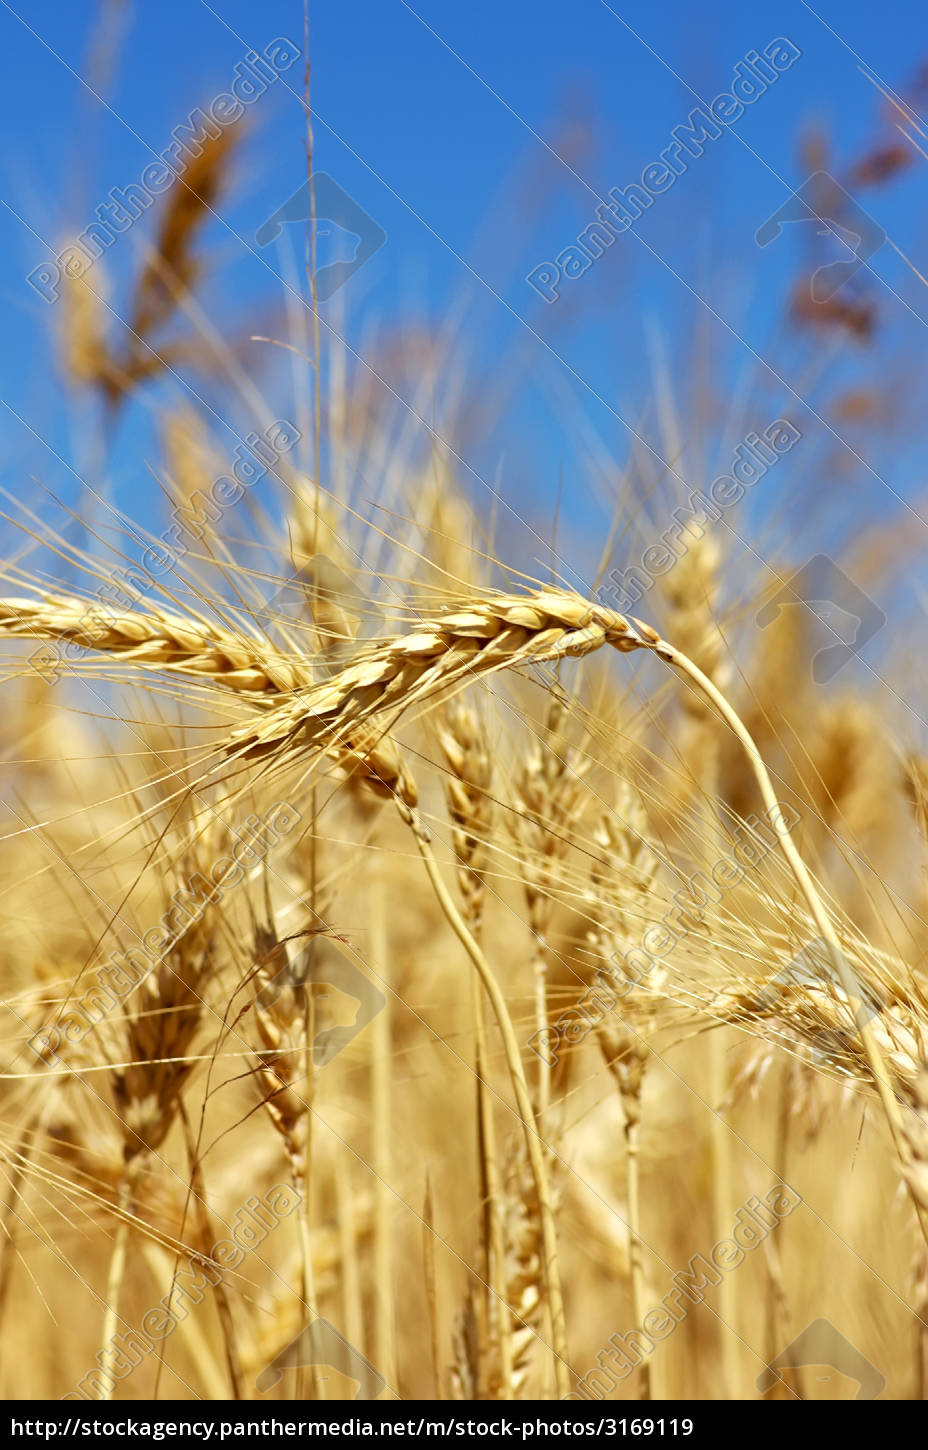 agricultural, agriculture, farming, spike, nutrition, cultivate - 3169119